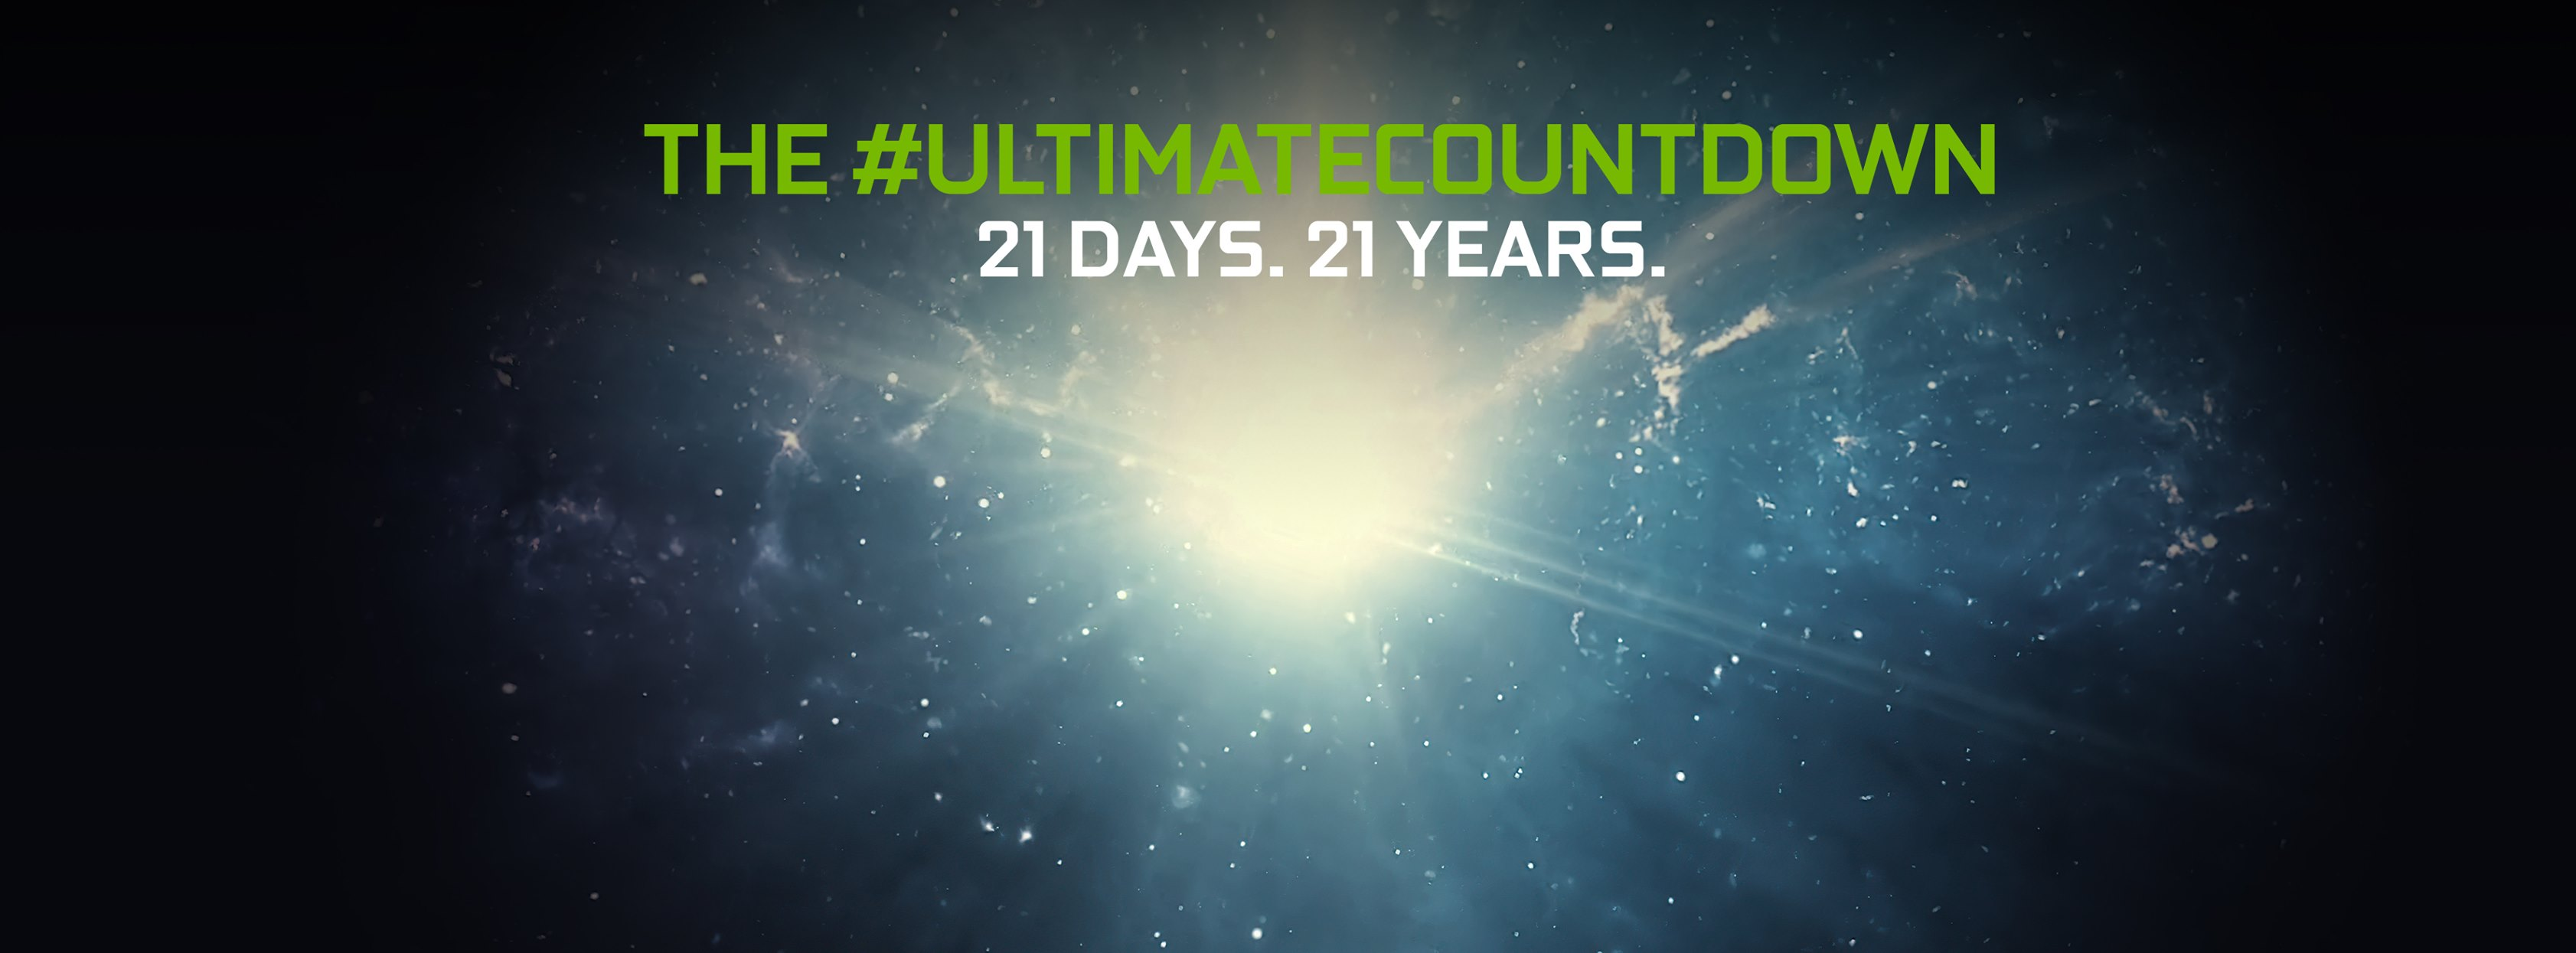 NVIDIA GeForce RTX Ultimate Countdown